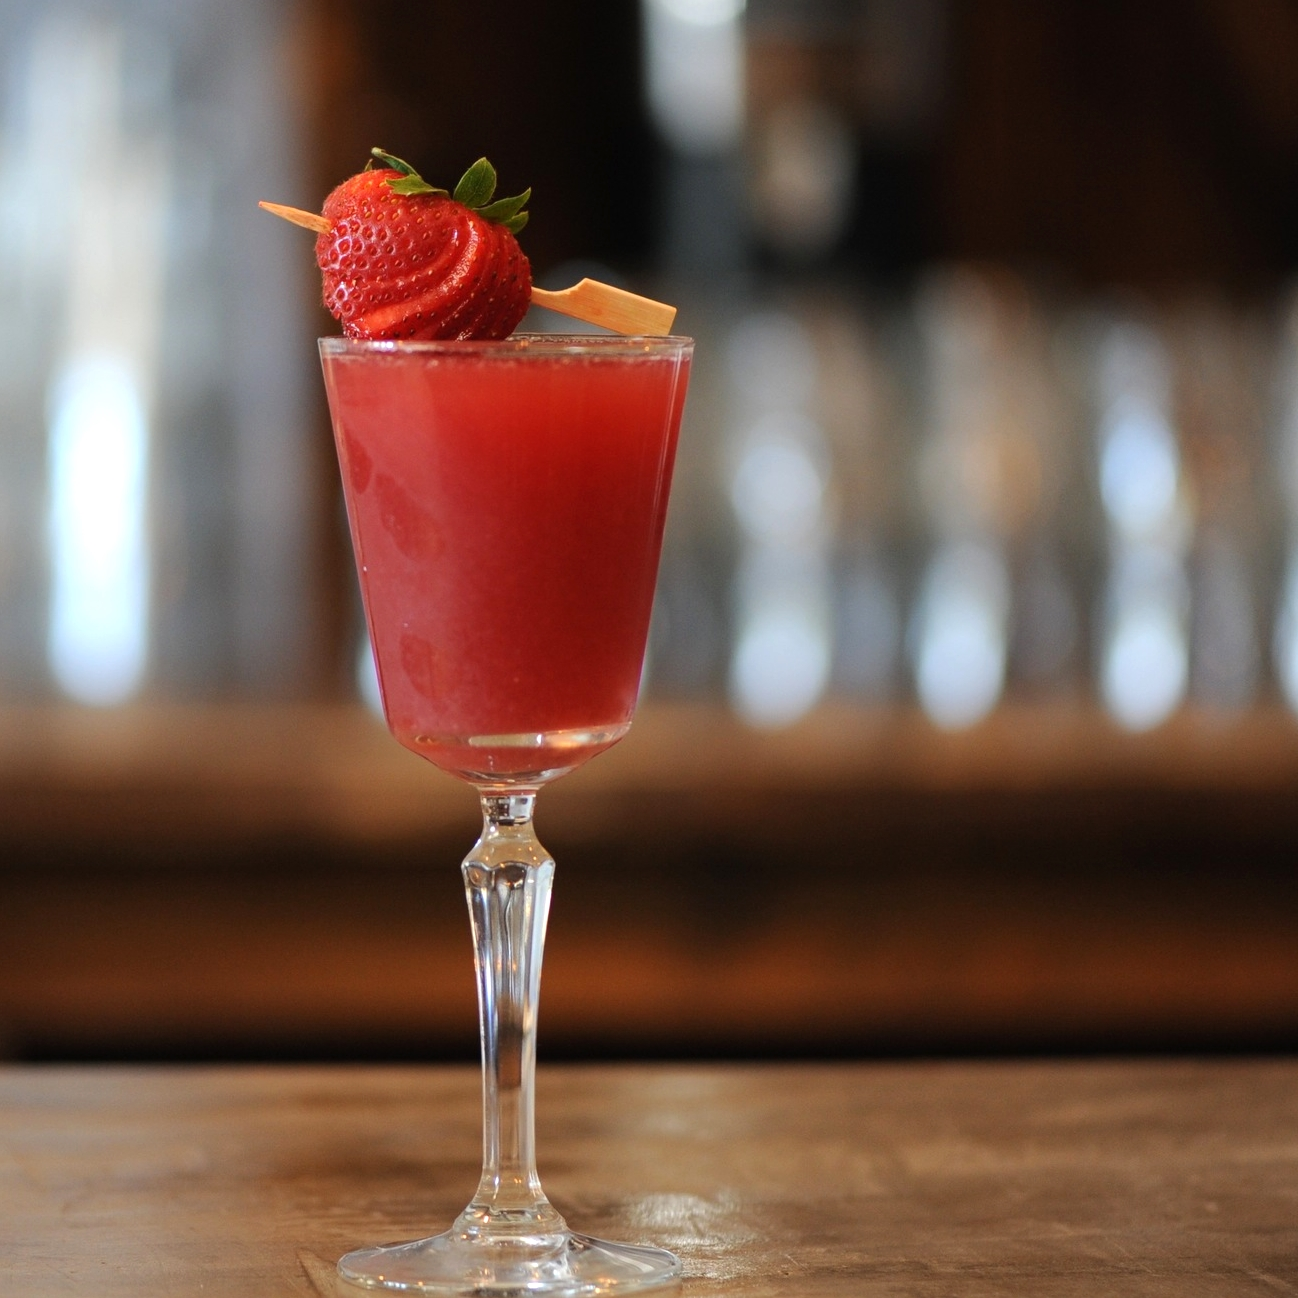 the-cocktail-experiment-syrups-grenadine-strawberry-swing.jpg